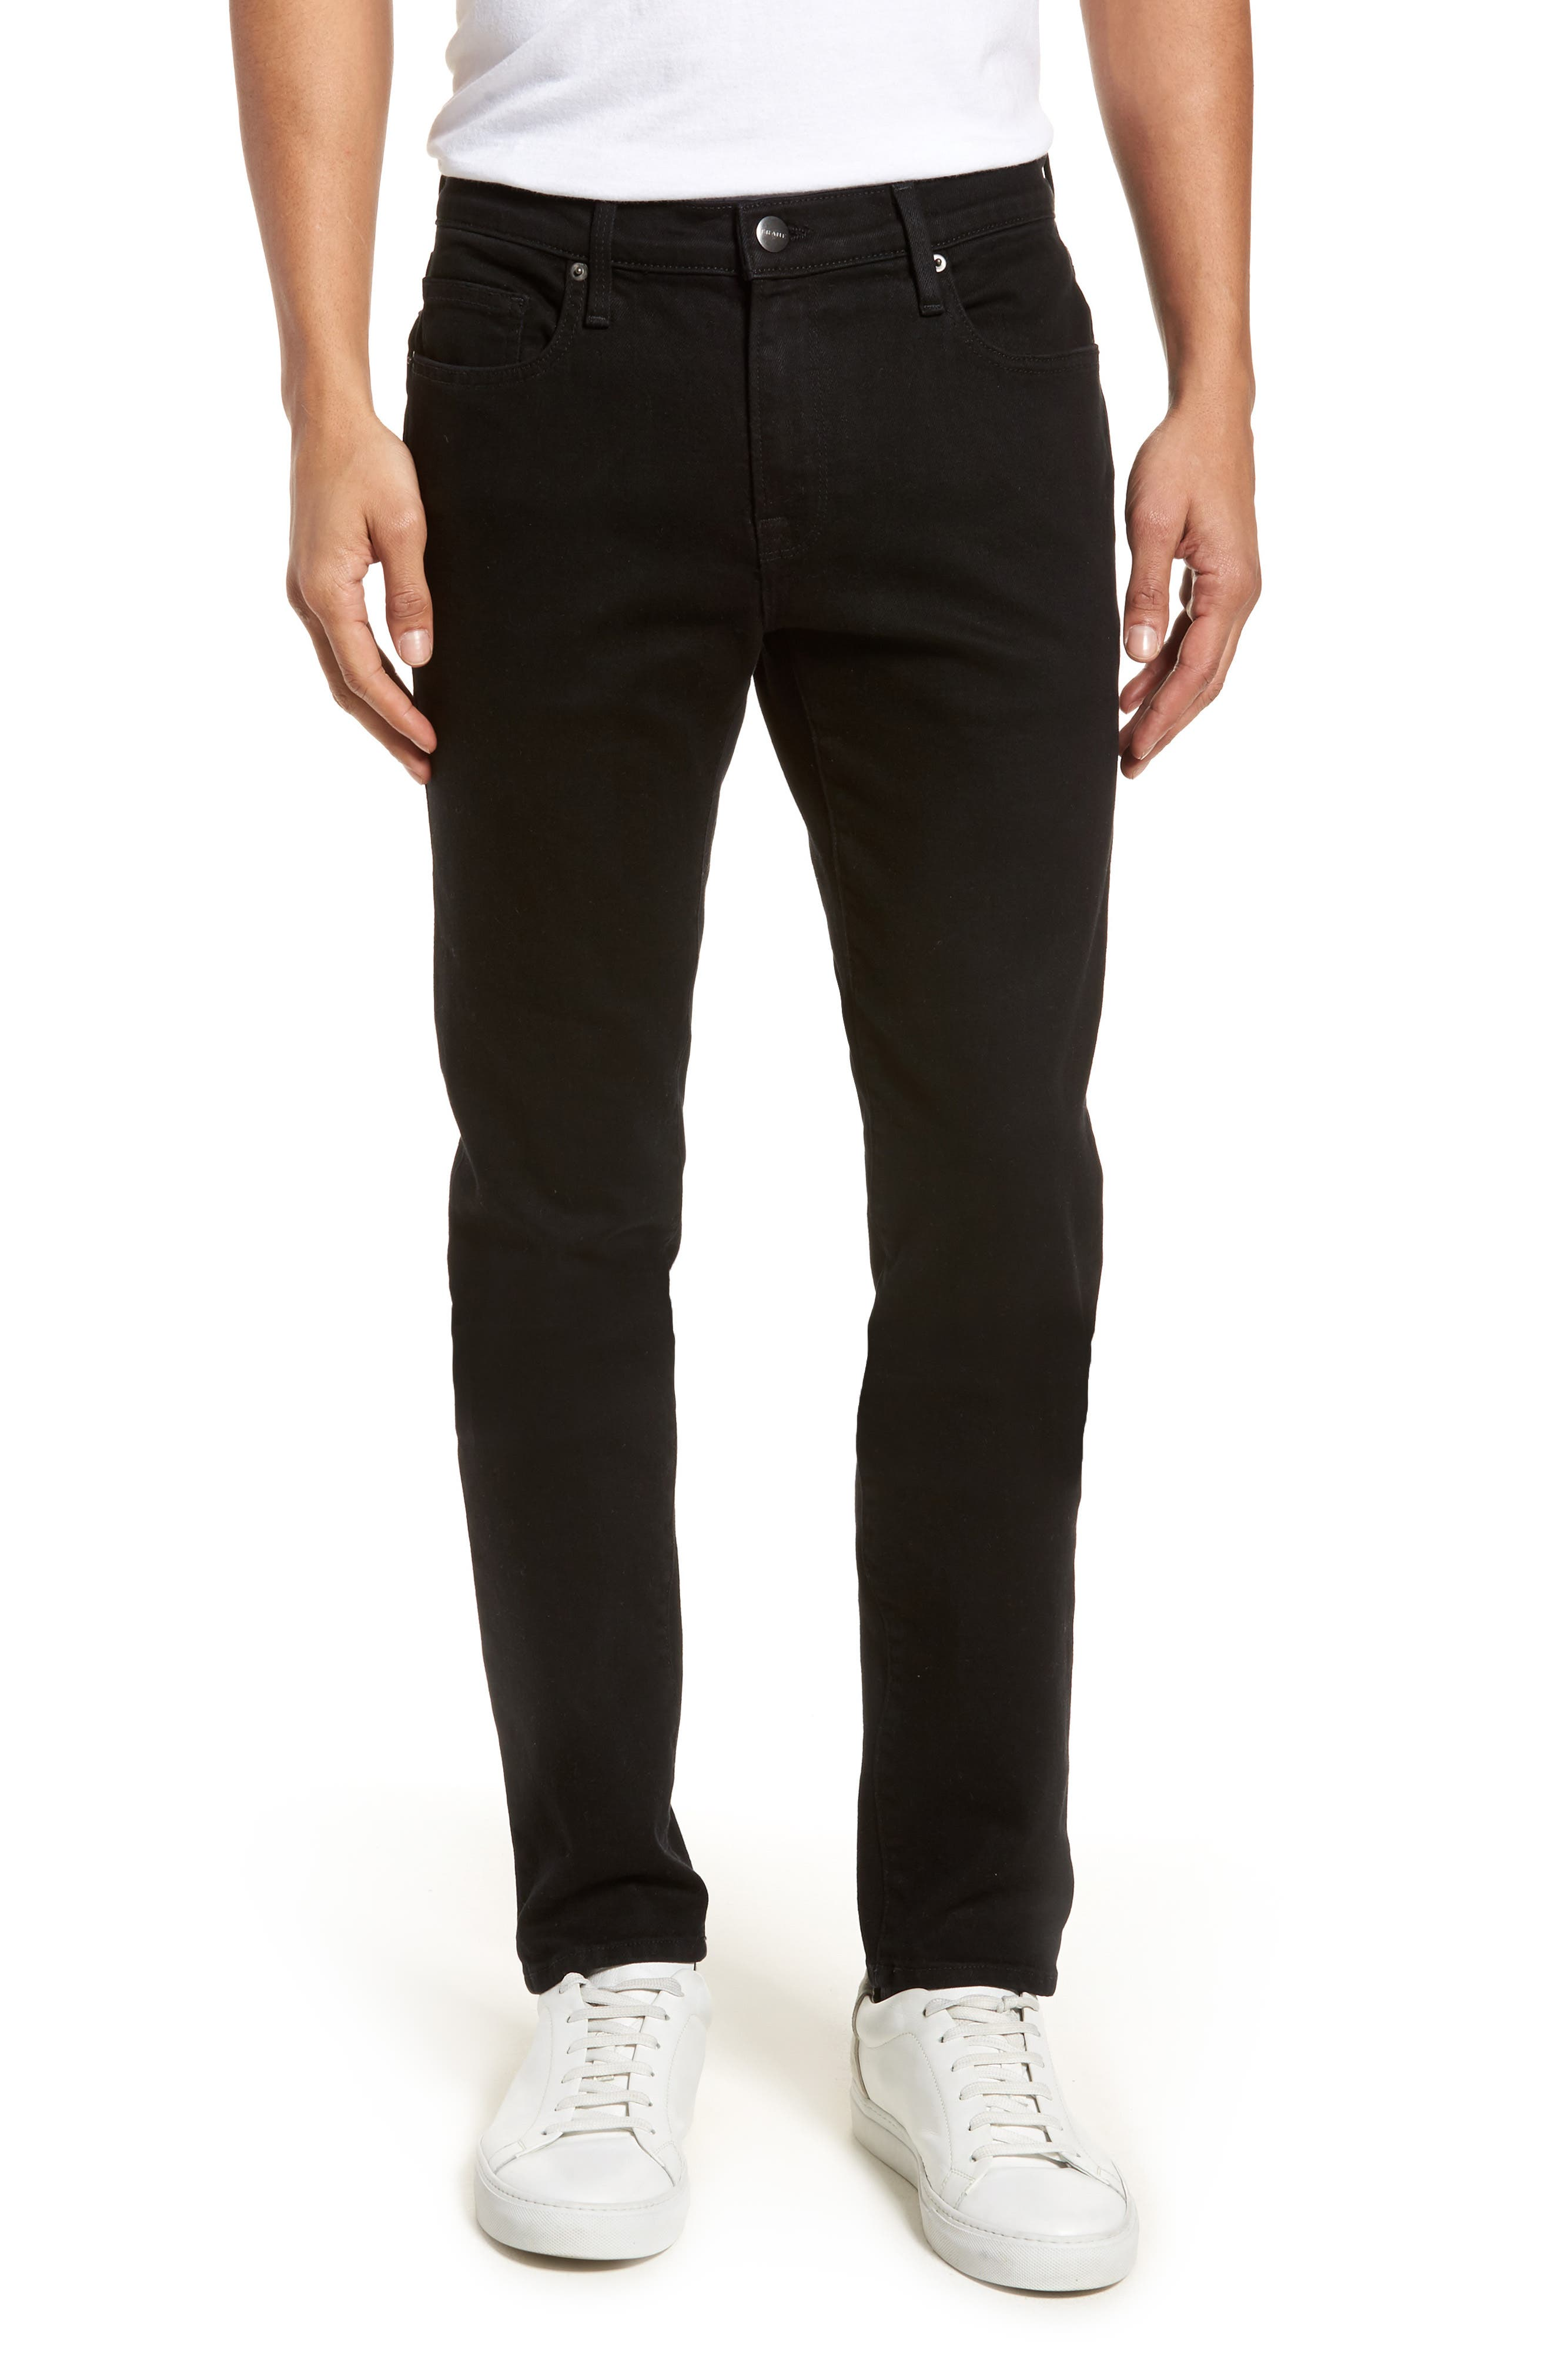 L'Homme Skinny Fit Jeans,                         Main,                         color, NOIR